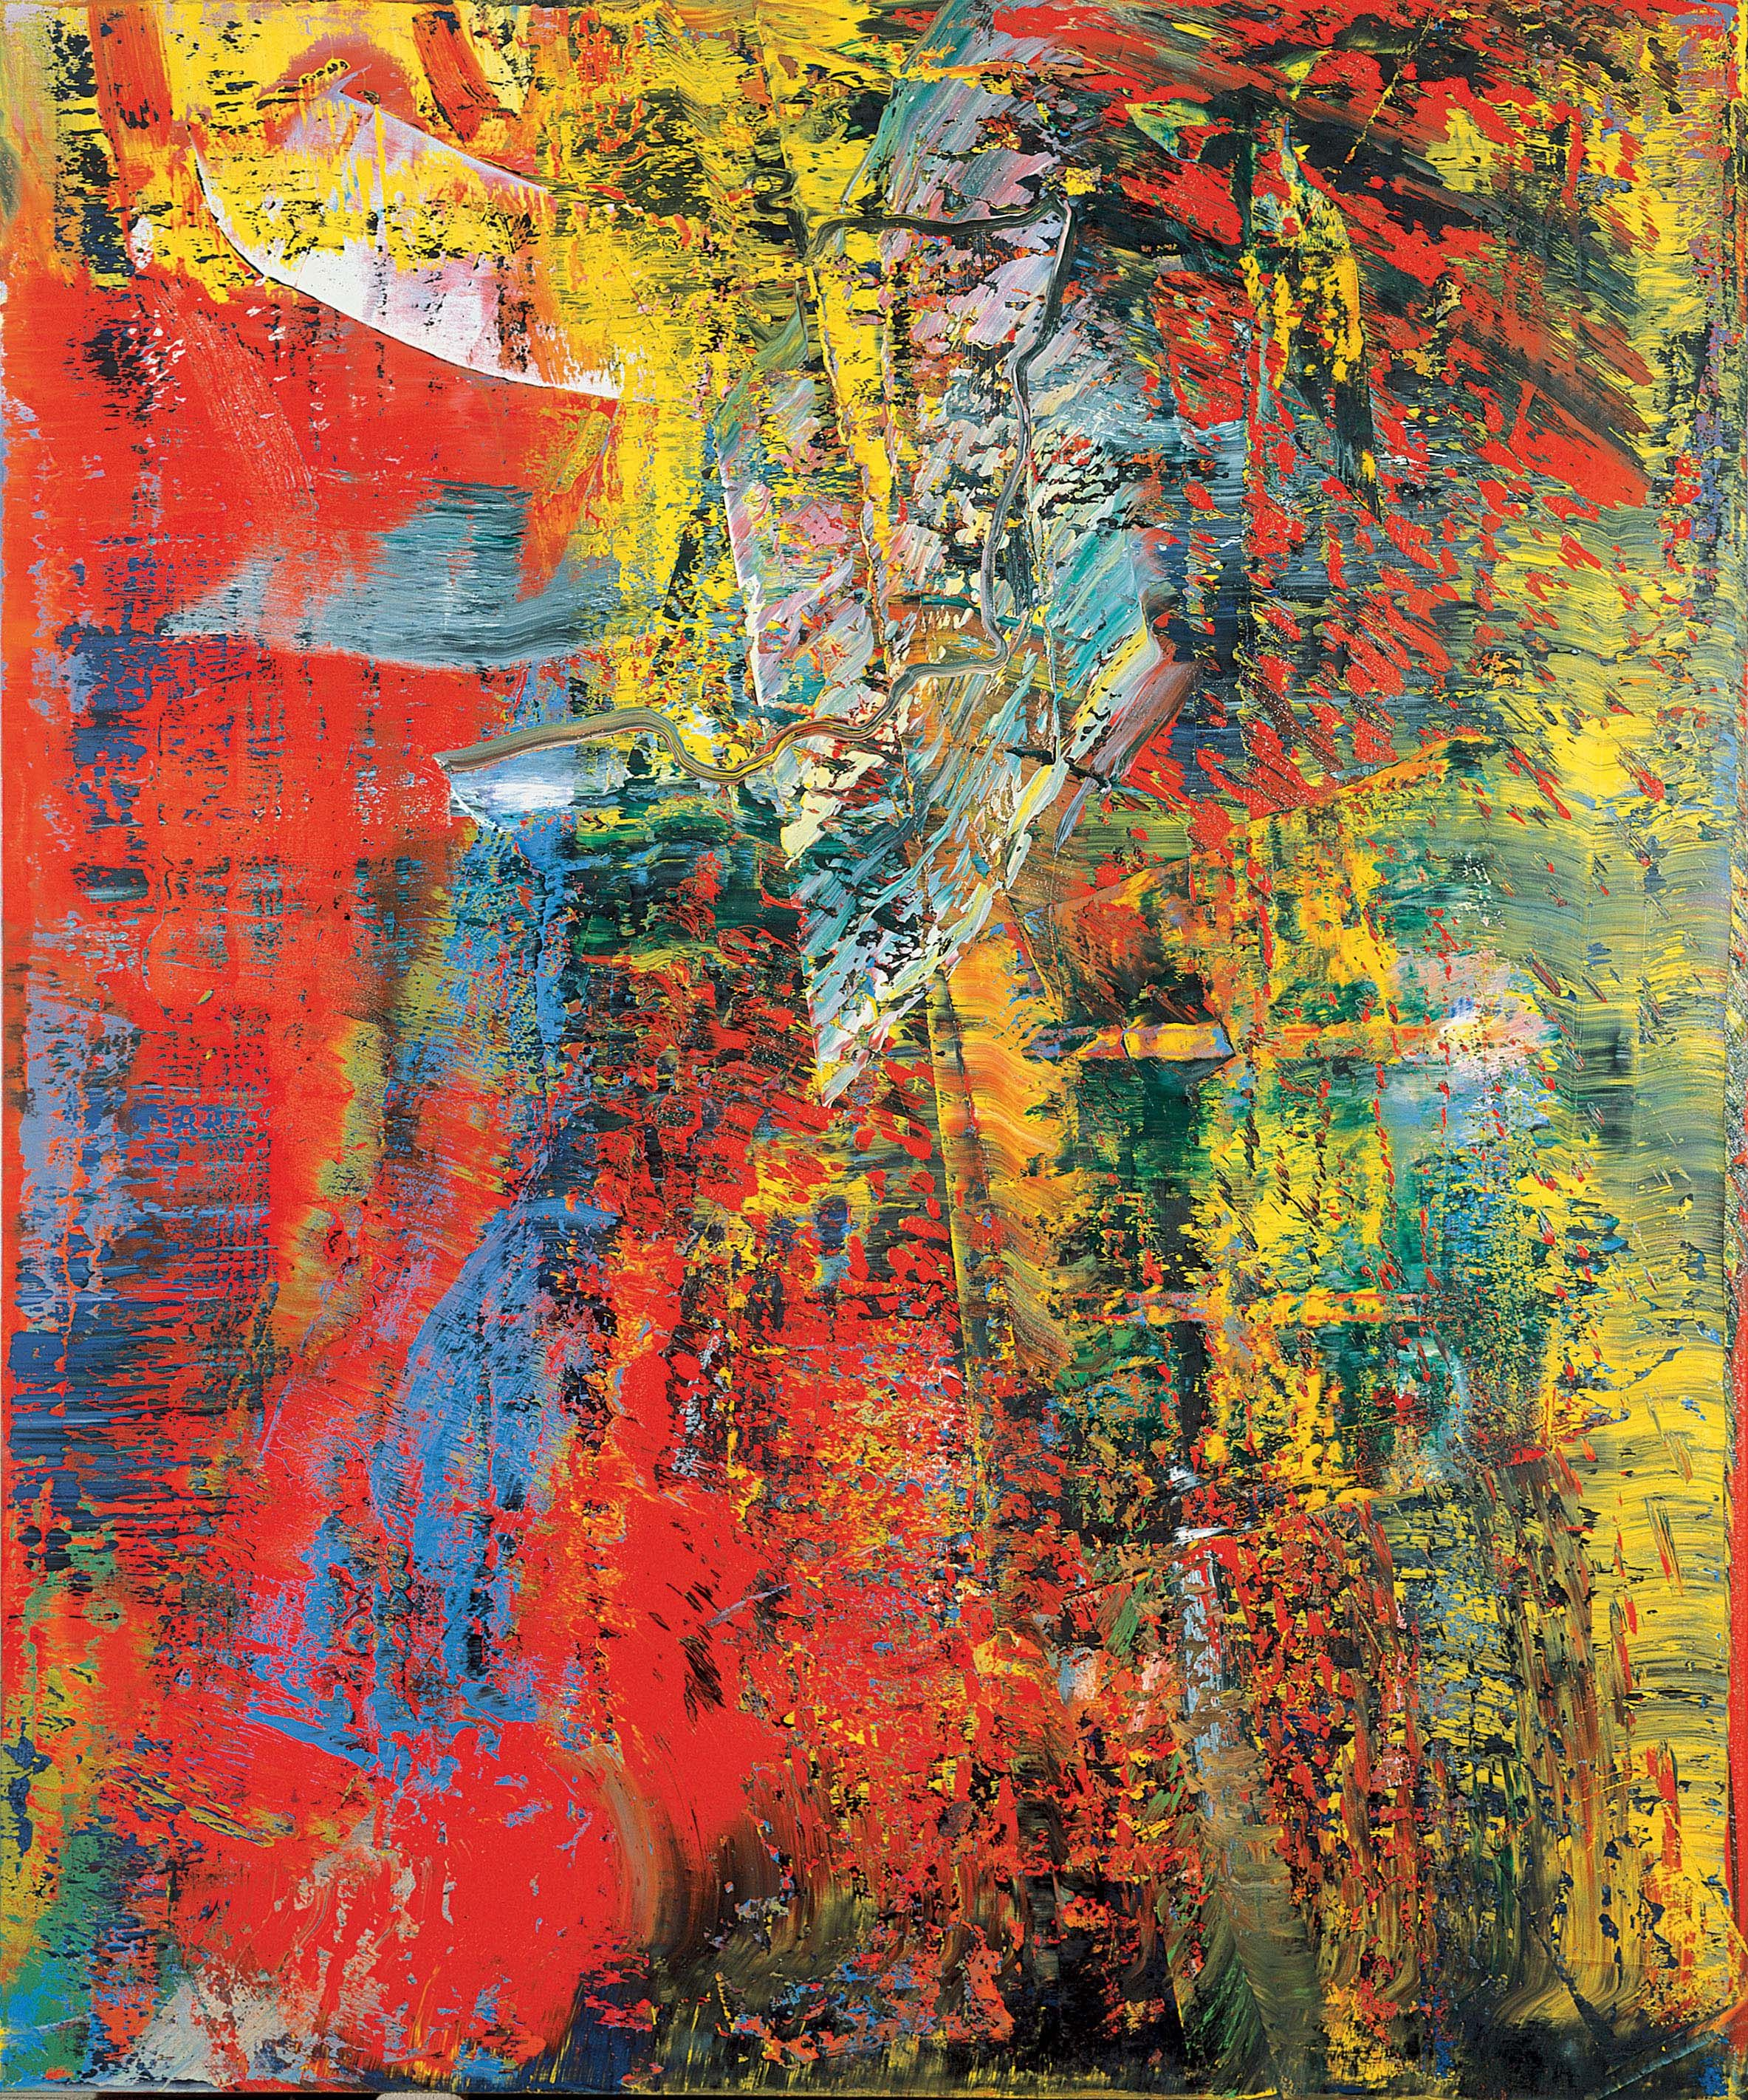 Gerhard Richter I Actually Like This One Better Than The 34 Million One Konstarterna Abstrakt Abstract Painting